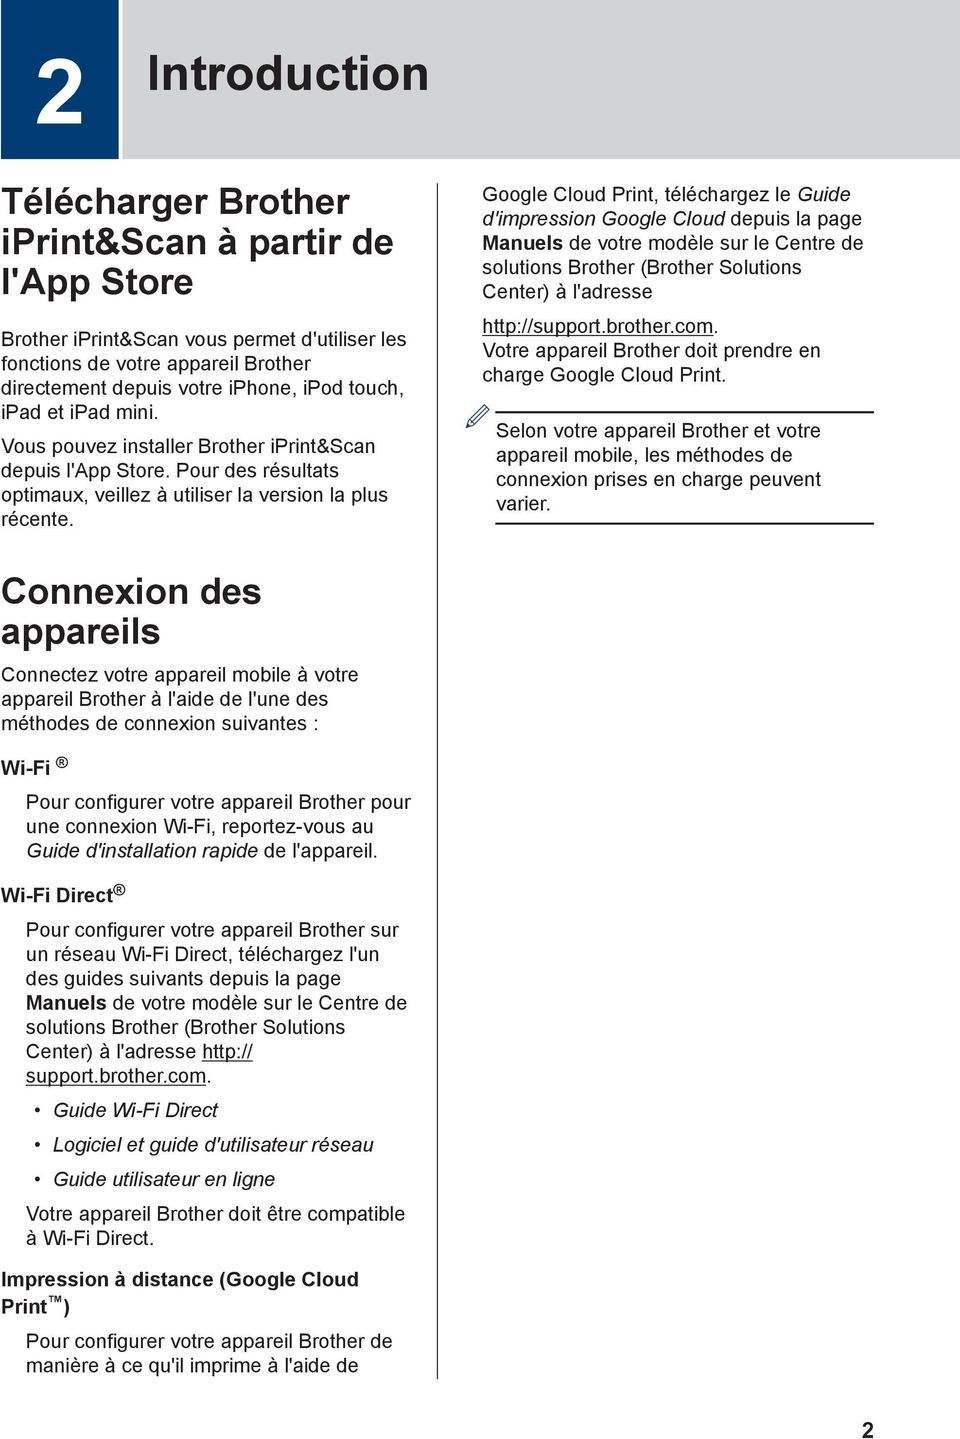 Google Cloud Print, téléchargez le Guide d'impression Google Cloud depuis la page Manuels de votre modèle sur le Centre de solutions Brother (Brother Solutions Center) à l'adresse http://support.